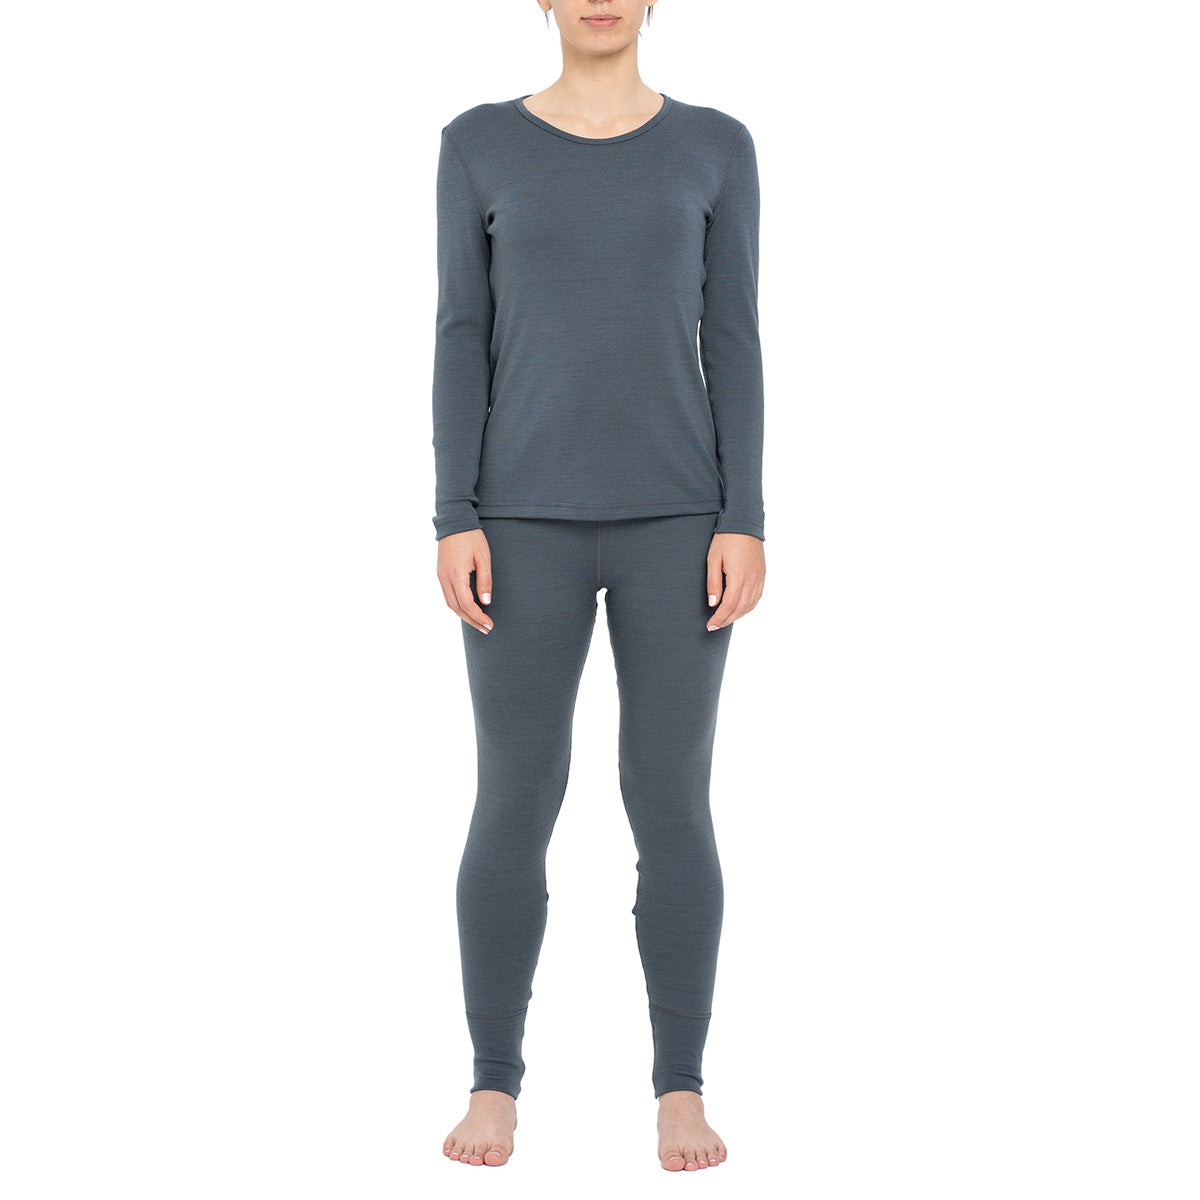 Women's Long Sleeve Set 250gsm Merino Wool Perfect Grey